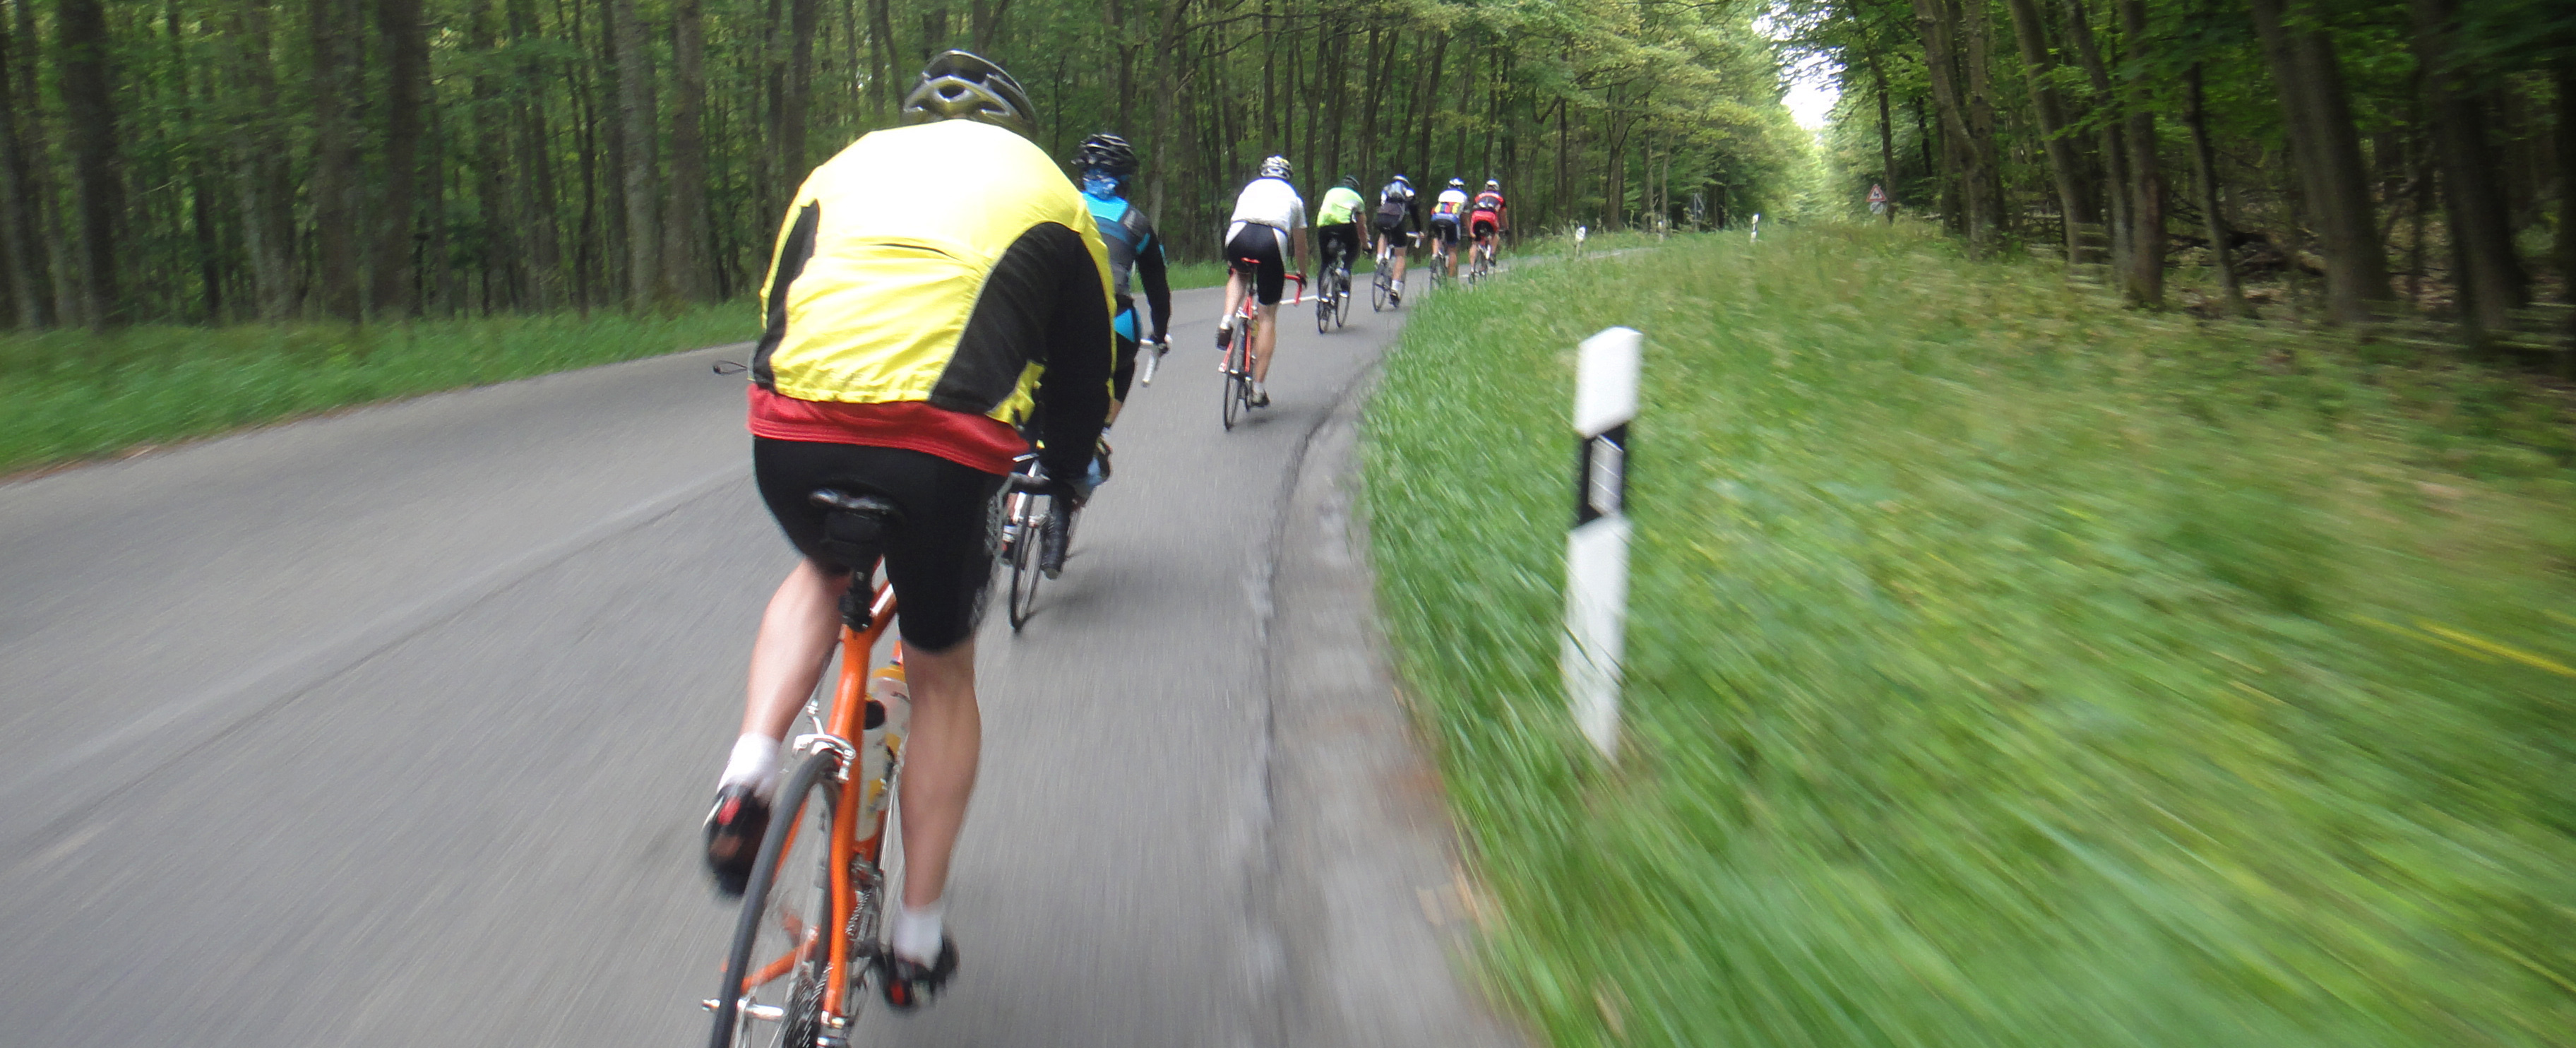 View of cyclists from the back